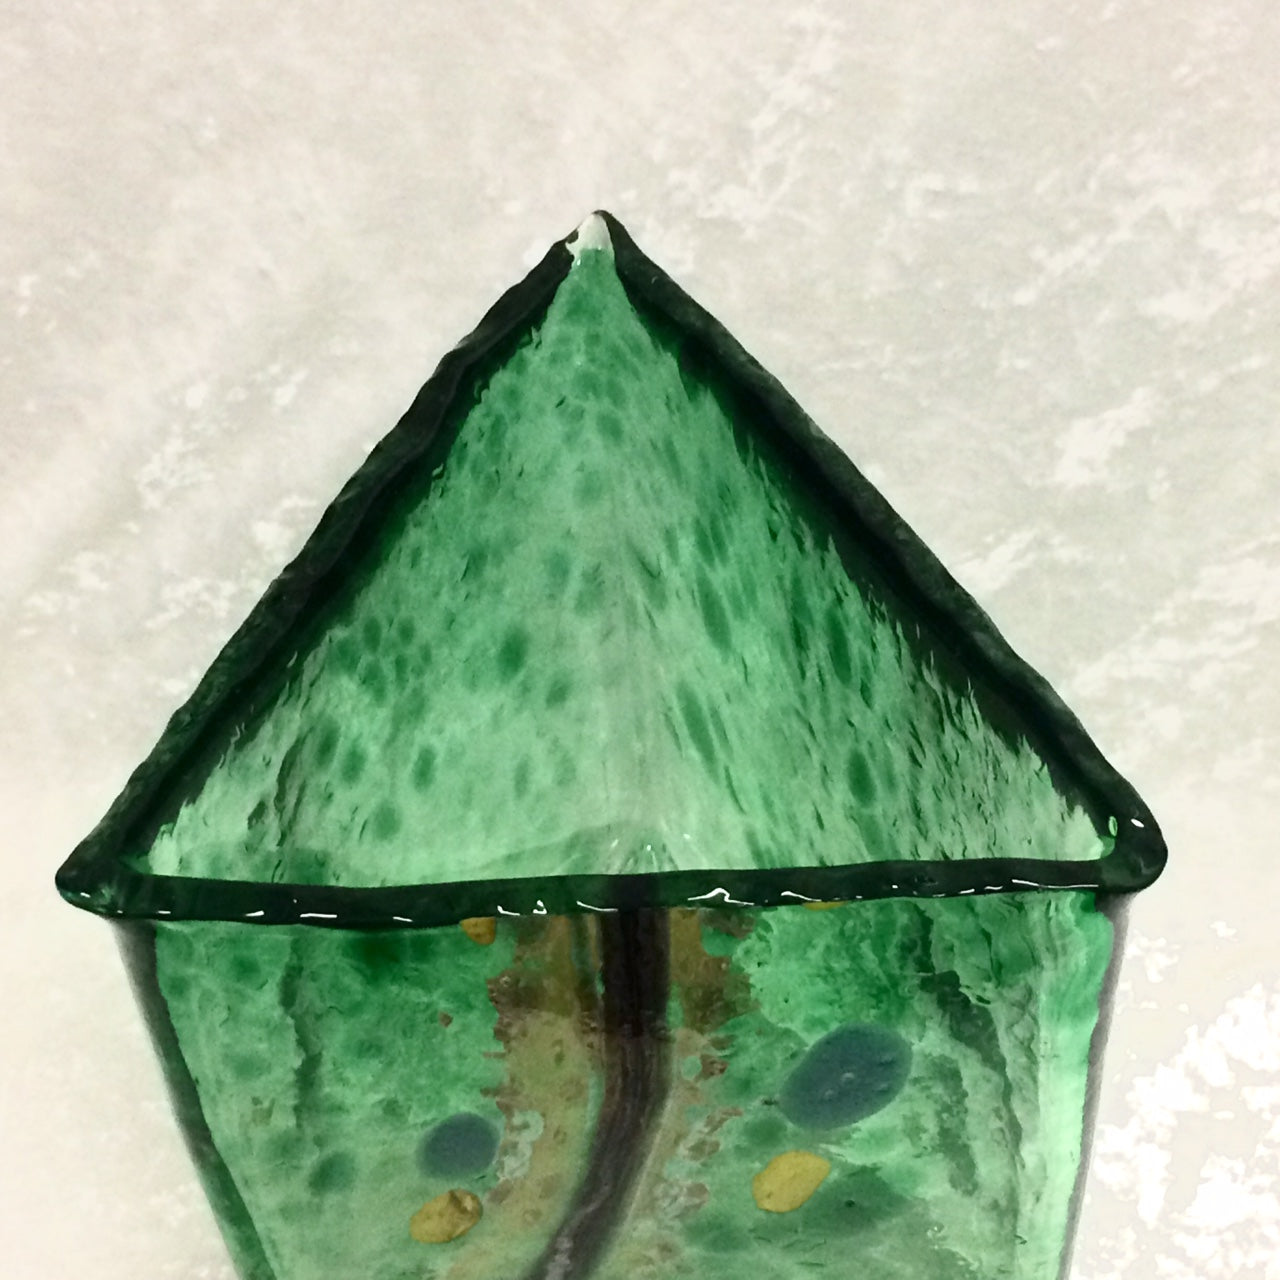 Green Triangular Vase